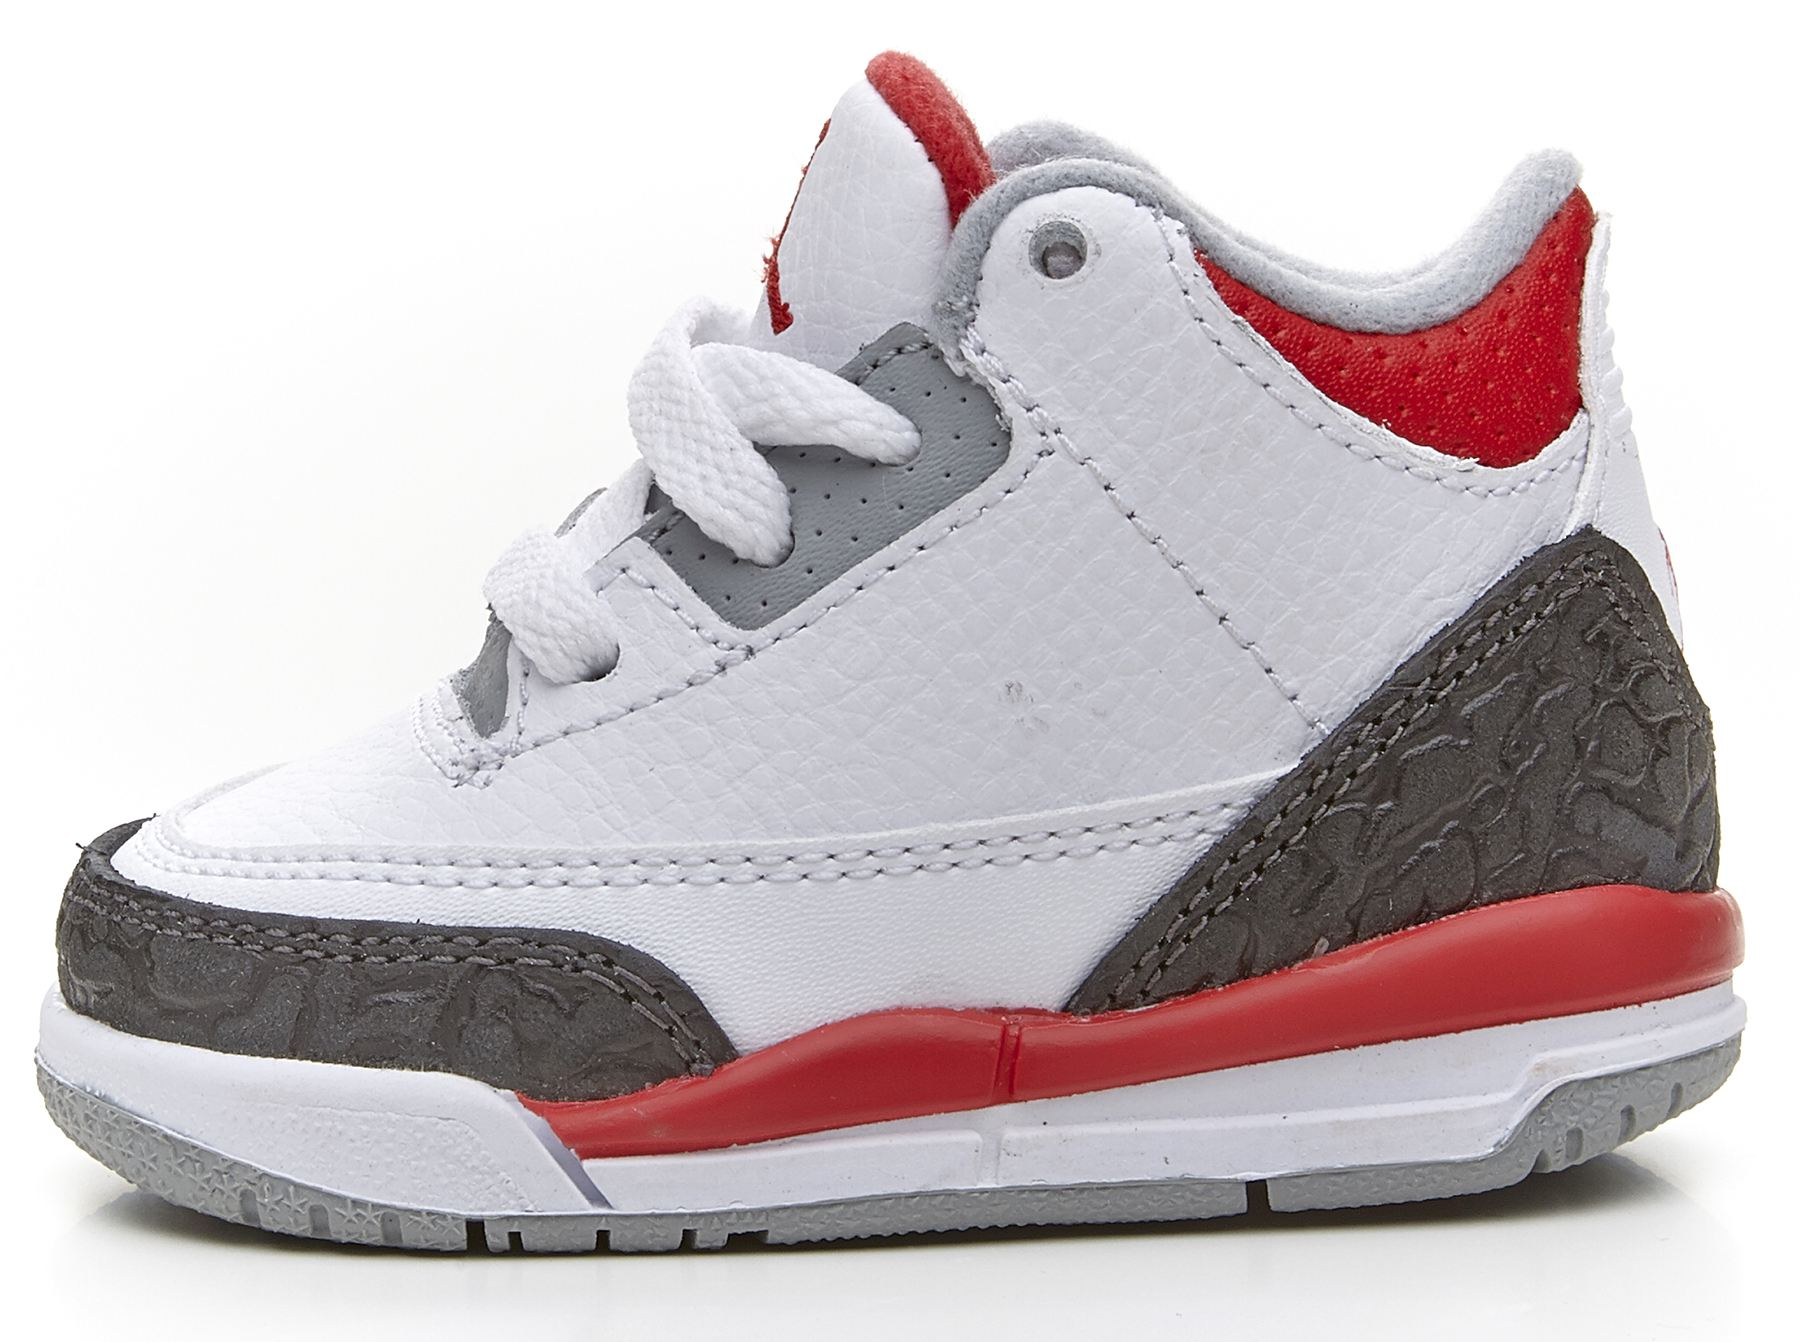 Kids Foot Locker boasts an unbeatable selection of shoes, apparel, kids red air jordan trainers and accessories for kids, infants, and toddlers With brands ranging from Jordan, Nike. Kids' Grade School Air Jordan Retro 13 Basketball Shoes.